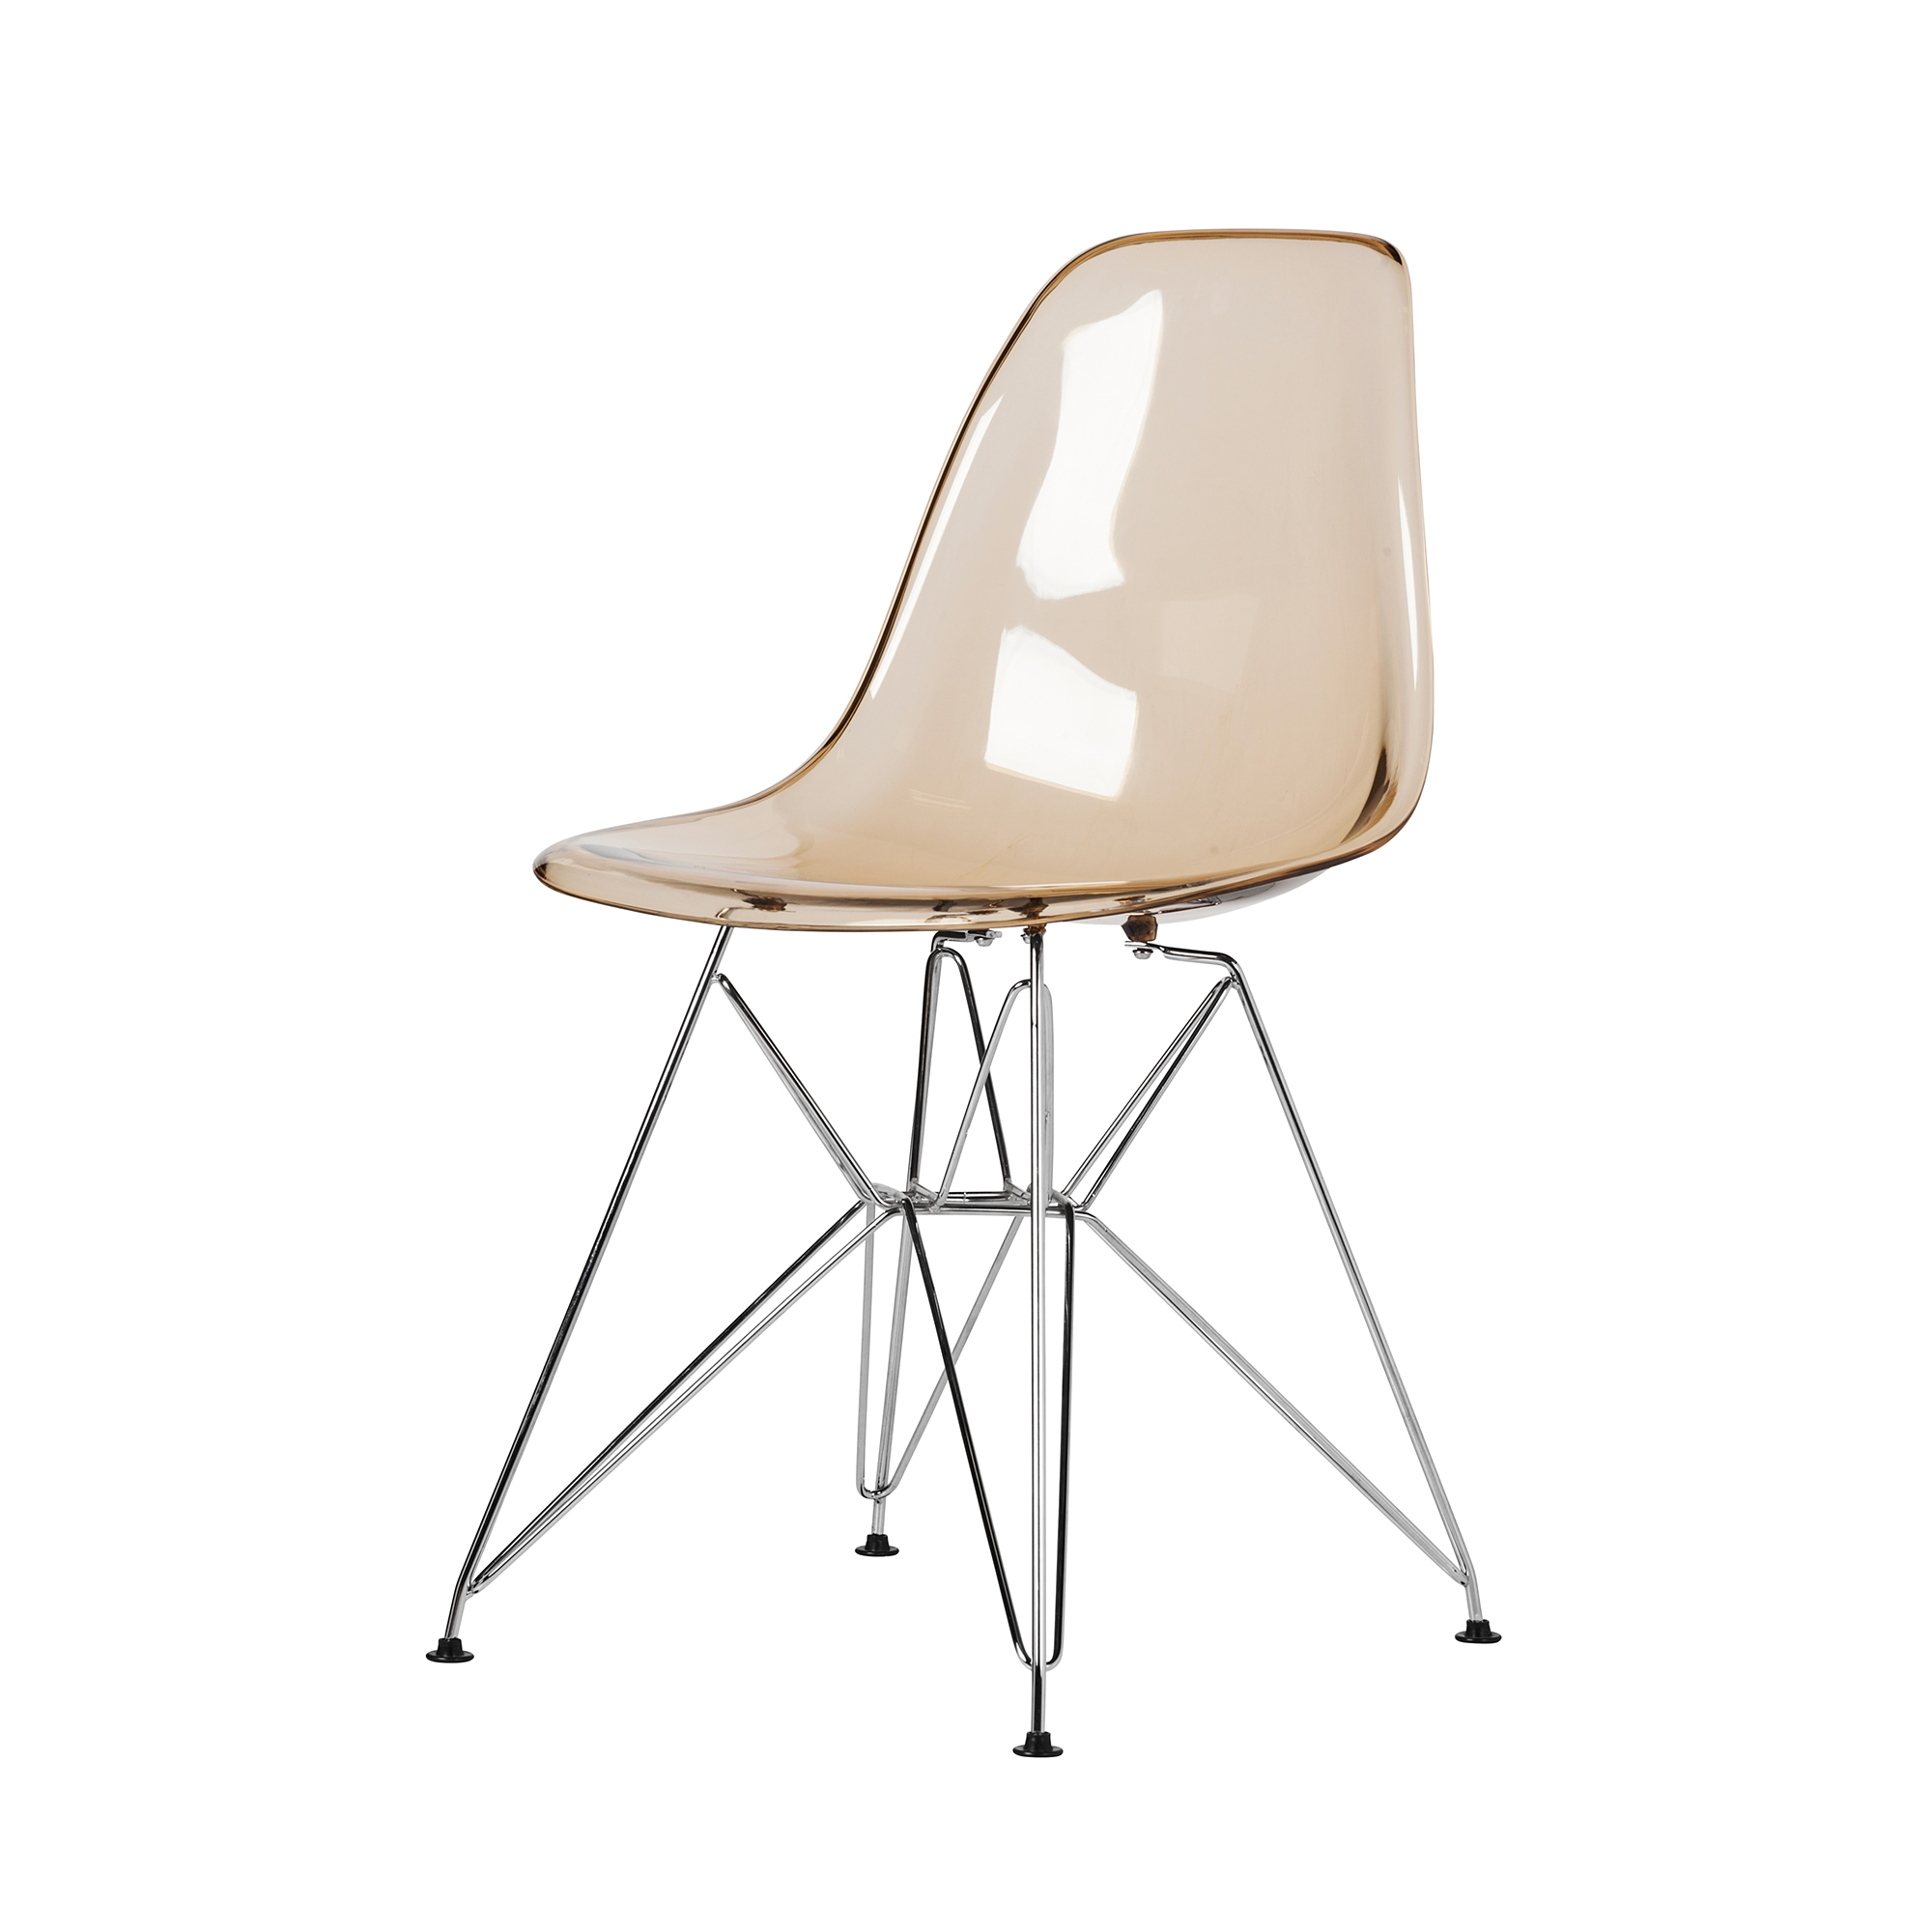 Eames Eiffel Molded Plastic Dsr Style Amber Side Chair With Chrome Legs